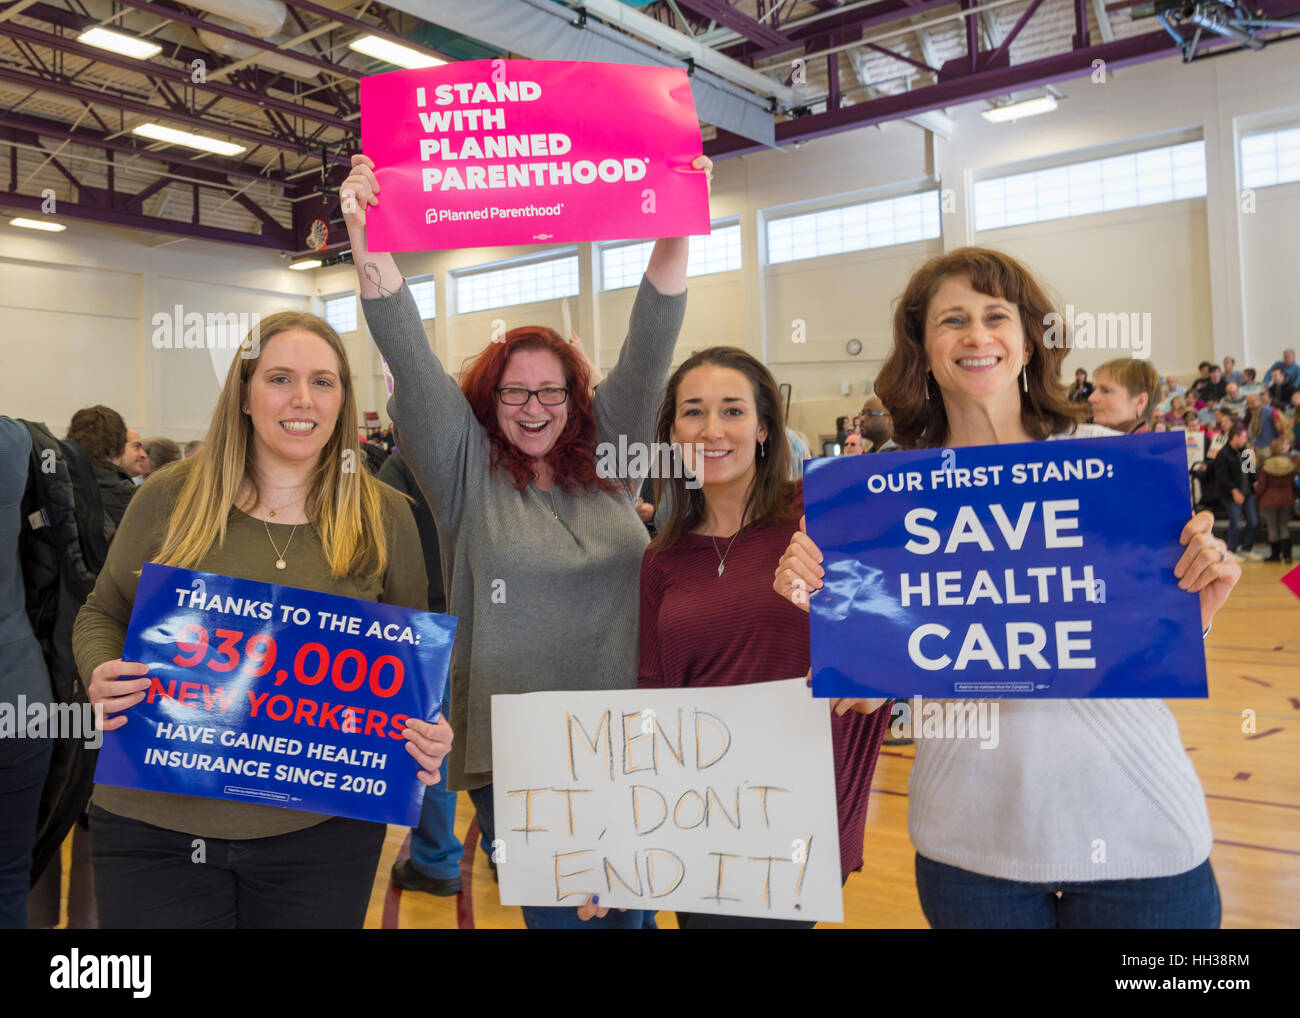 Westbury, USA. January 15, 2017.  L-R, Sue Moller of Merrick, Amy Budd of Bellmore, Stefana Muller of Babylon, and Stock Photo